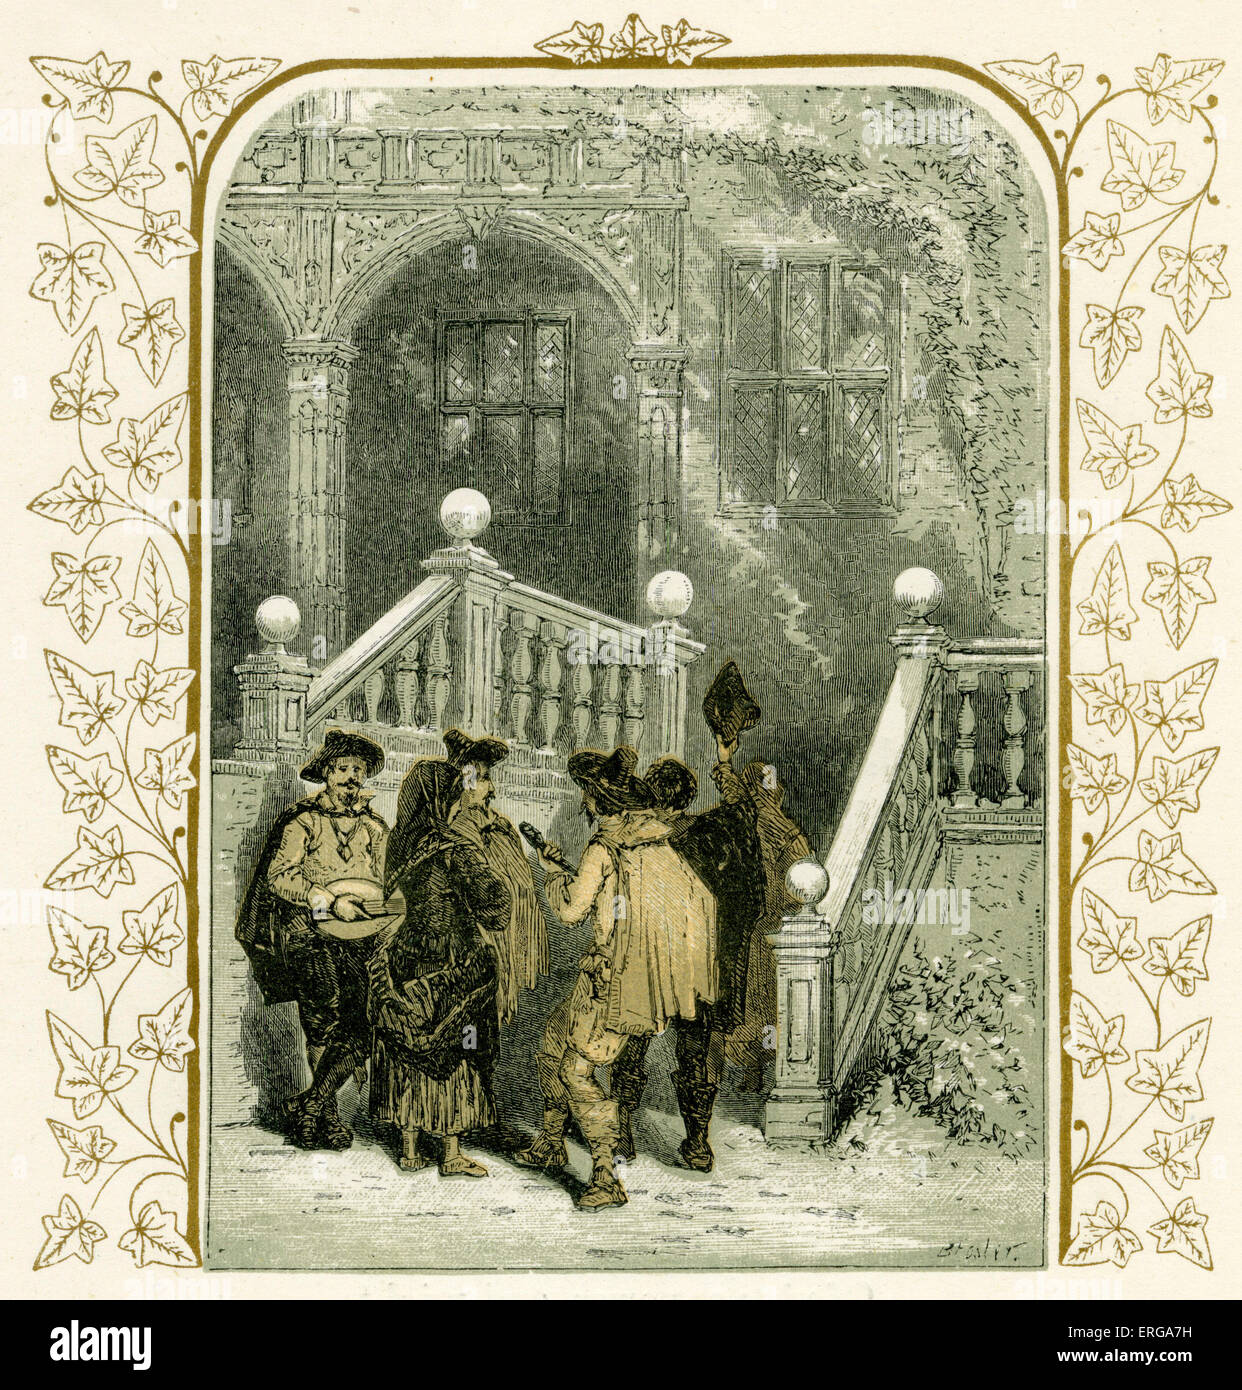 christmas carolers illustration by birket foster 1872 stock image - Christmas Classical Music